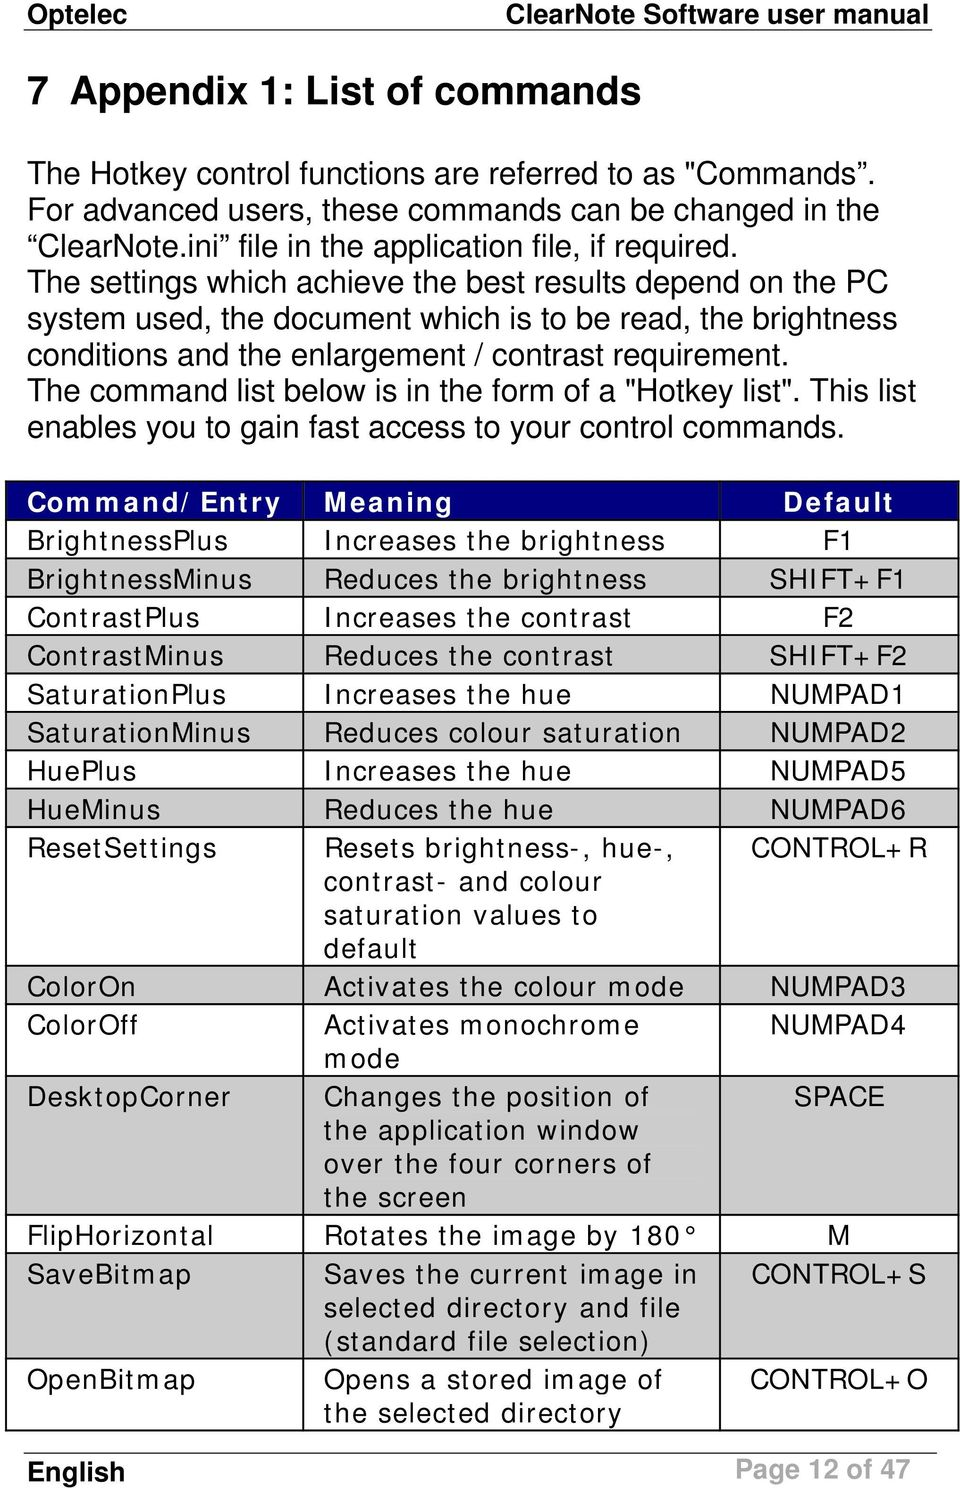 The settings which achieve the best results depend on the PC system used, the document which is to be read, the brightness conditions and the enlargement / contrast requirement.